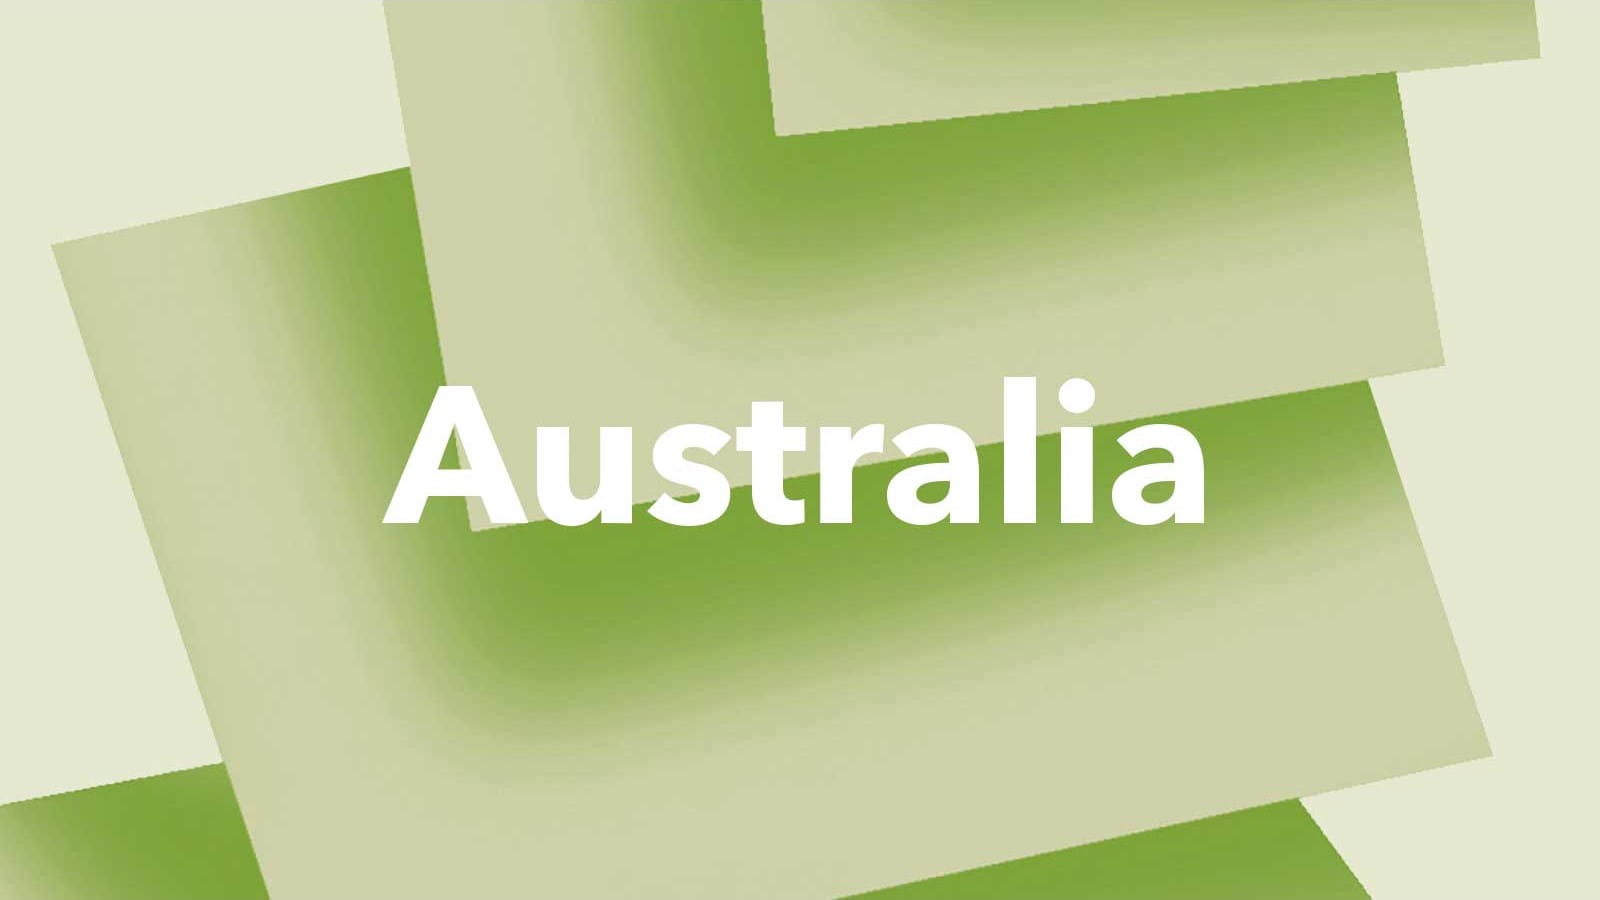 The word 'Australia' on a green background